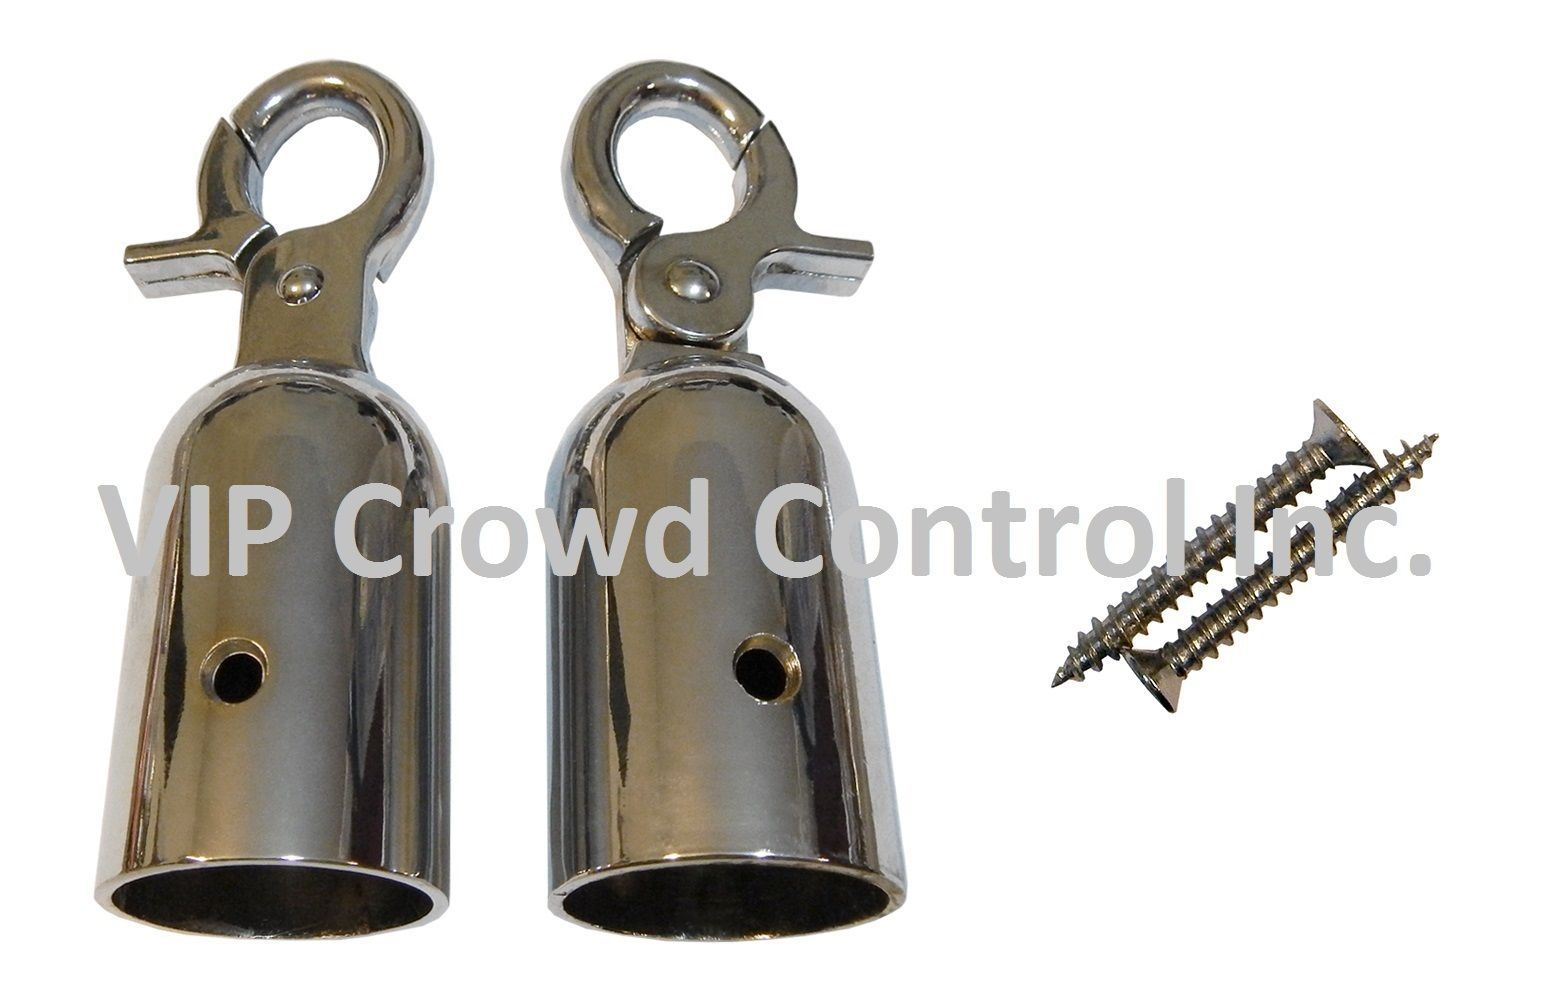 REPLACEMENT ROPE HOOK, 2 PCS SET, MIRROR POLISHED, VIP CROWD CONTROL